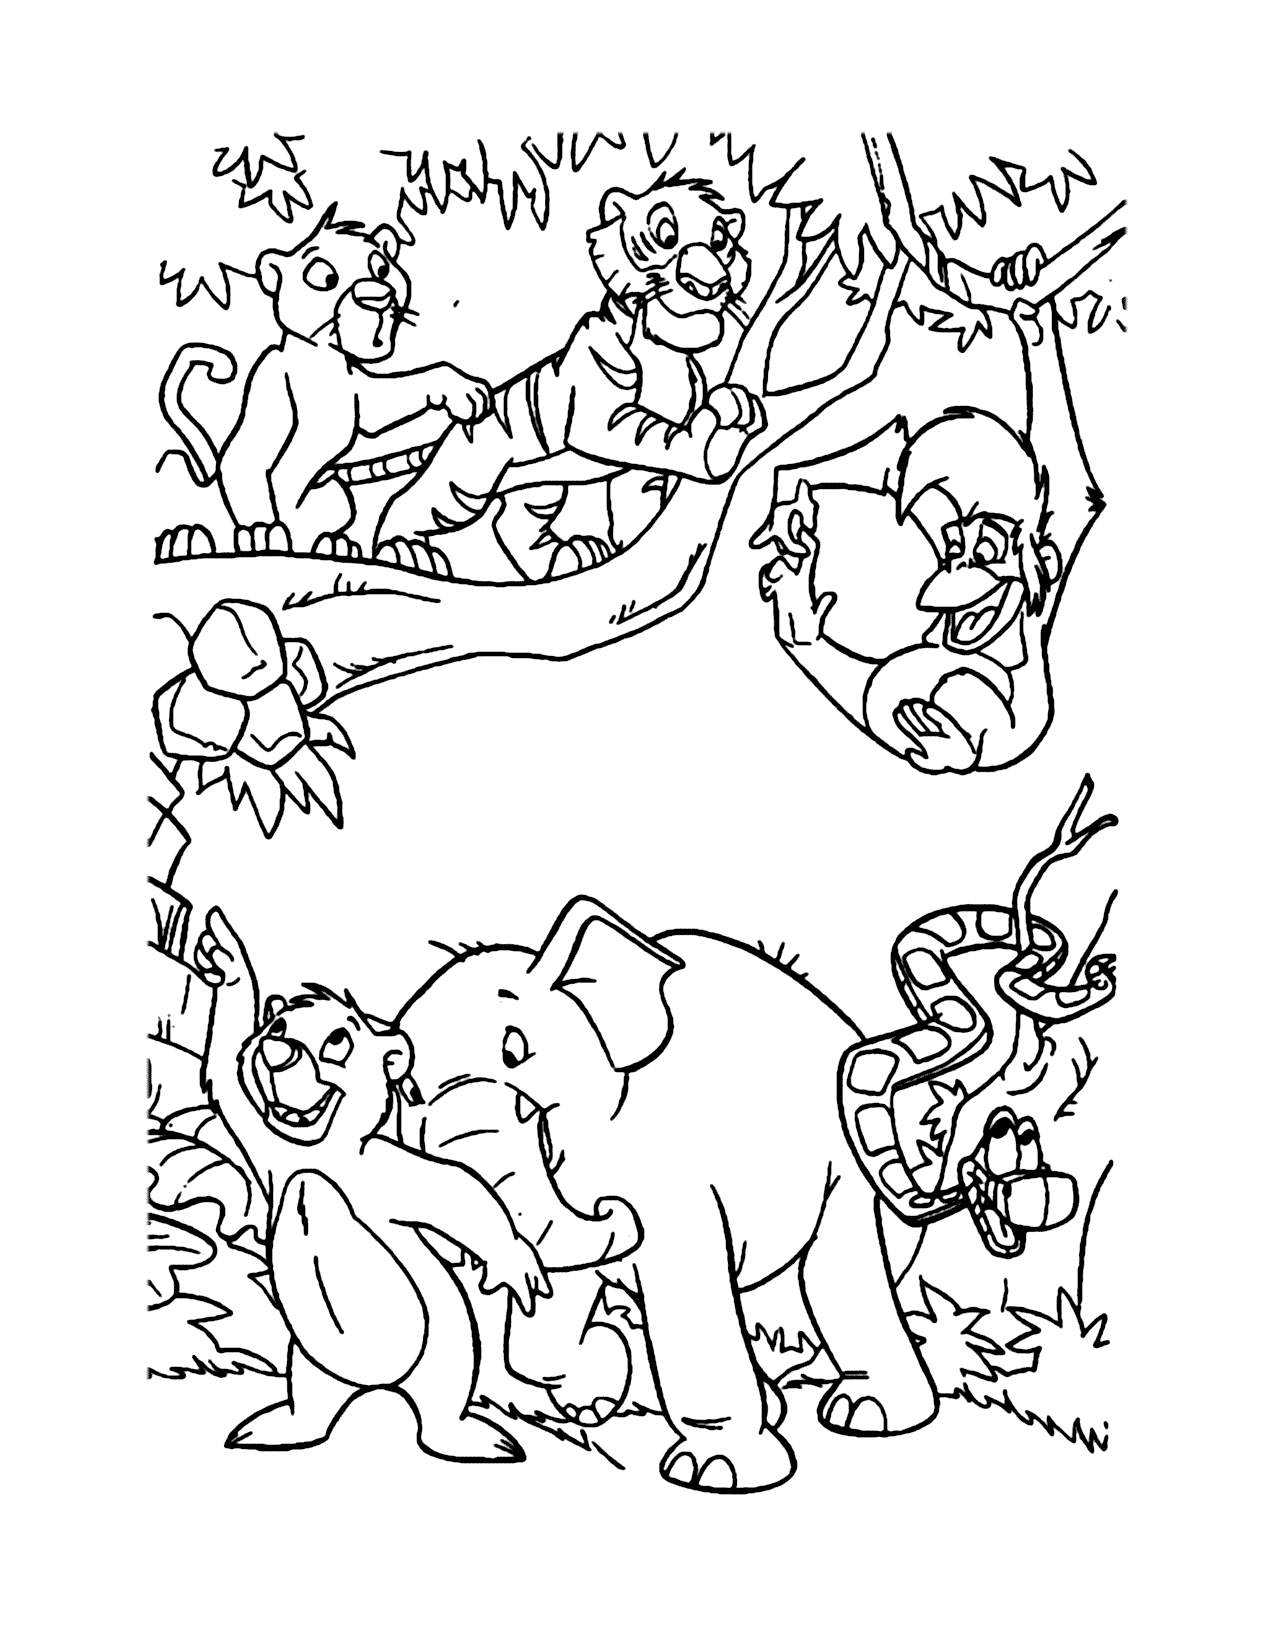 Jungle Book Baby Characters Coloring Page